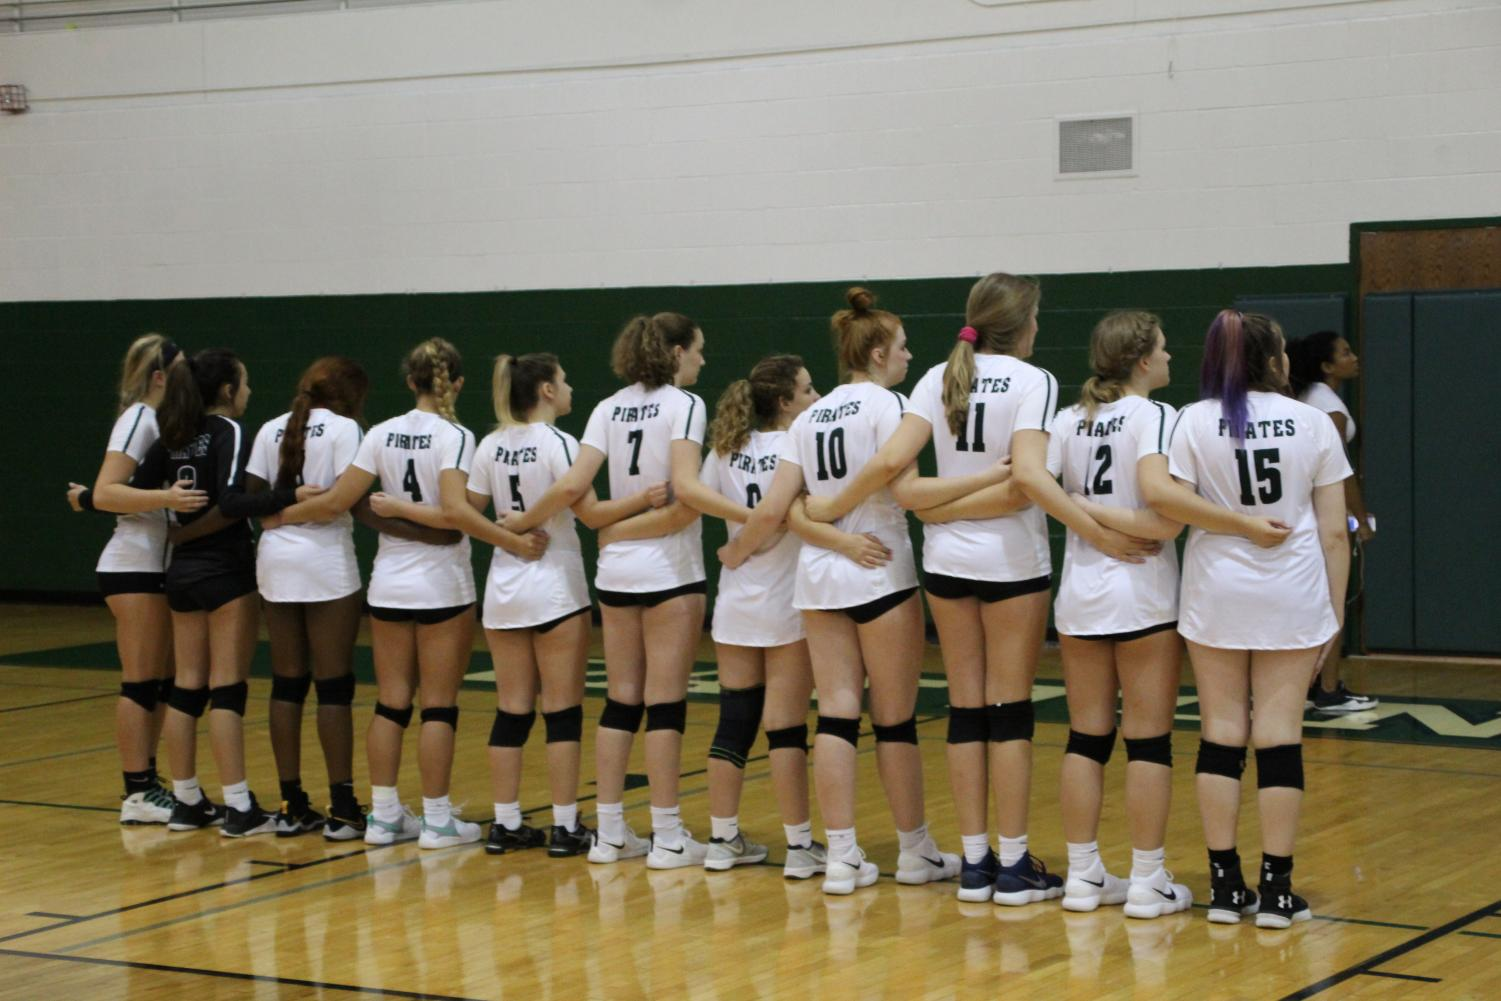 The volleyball team lines up for the singing of the National Anthem before a home match.